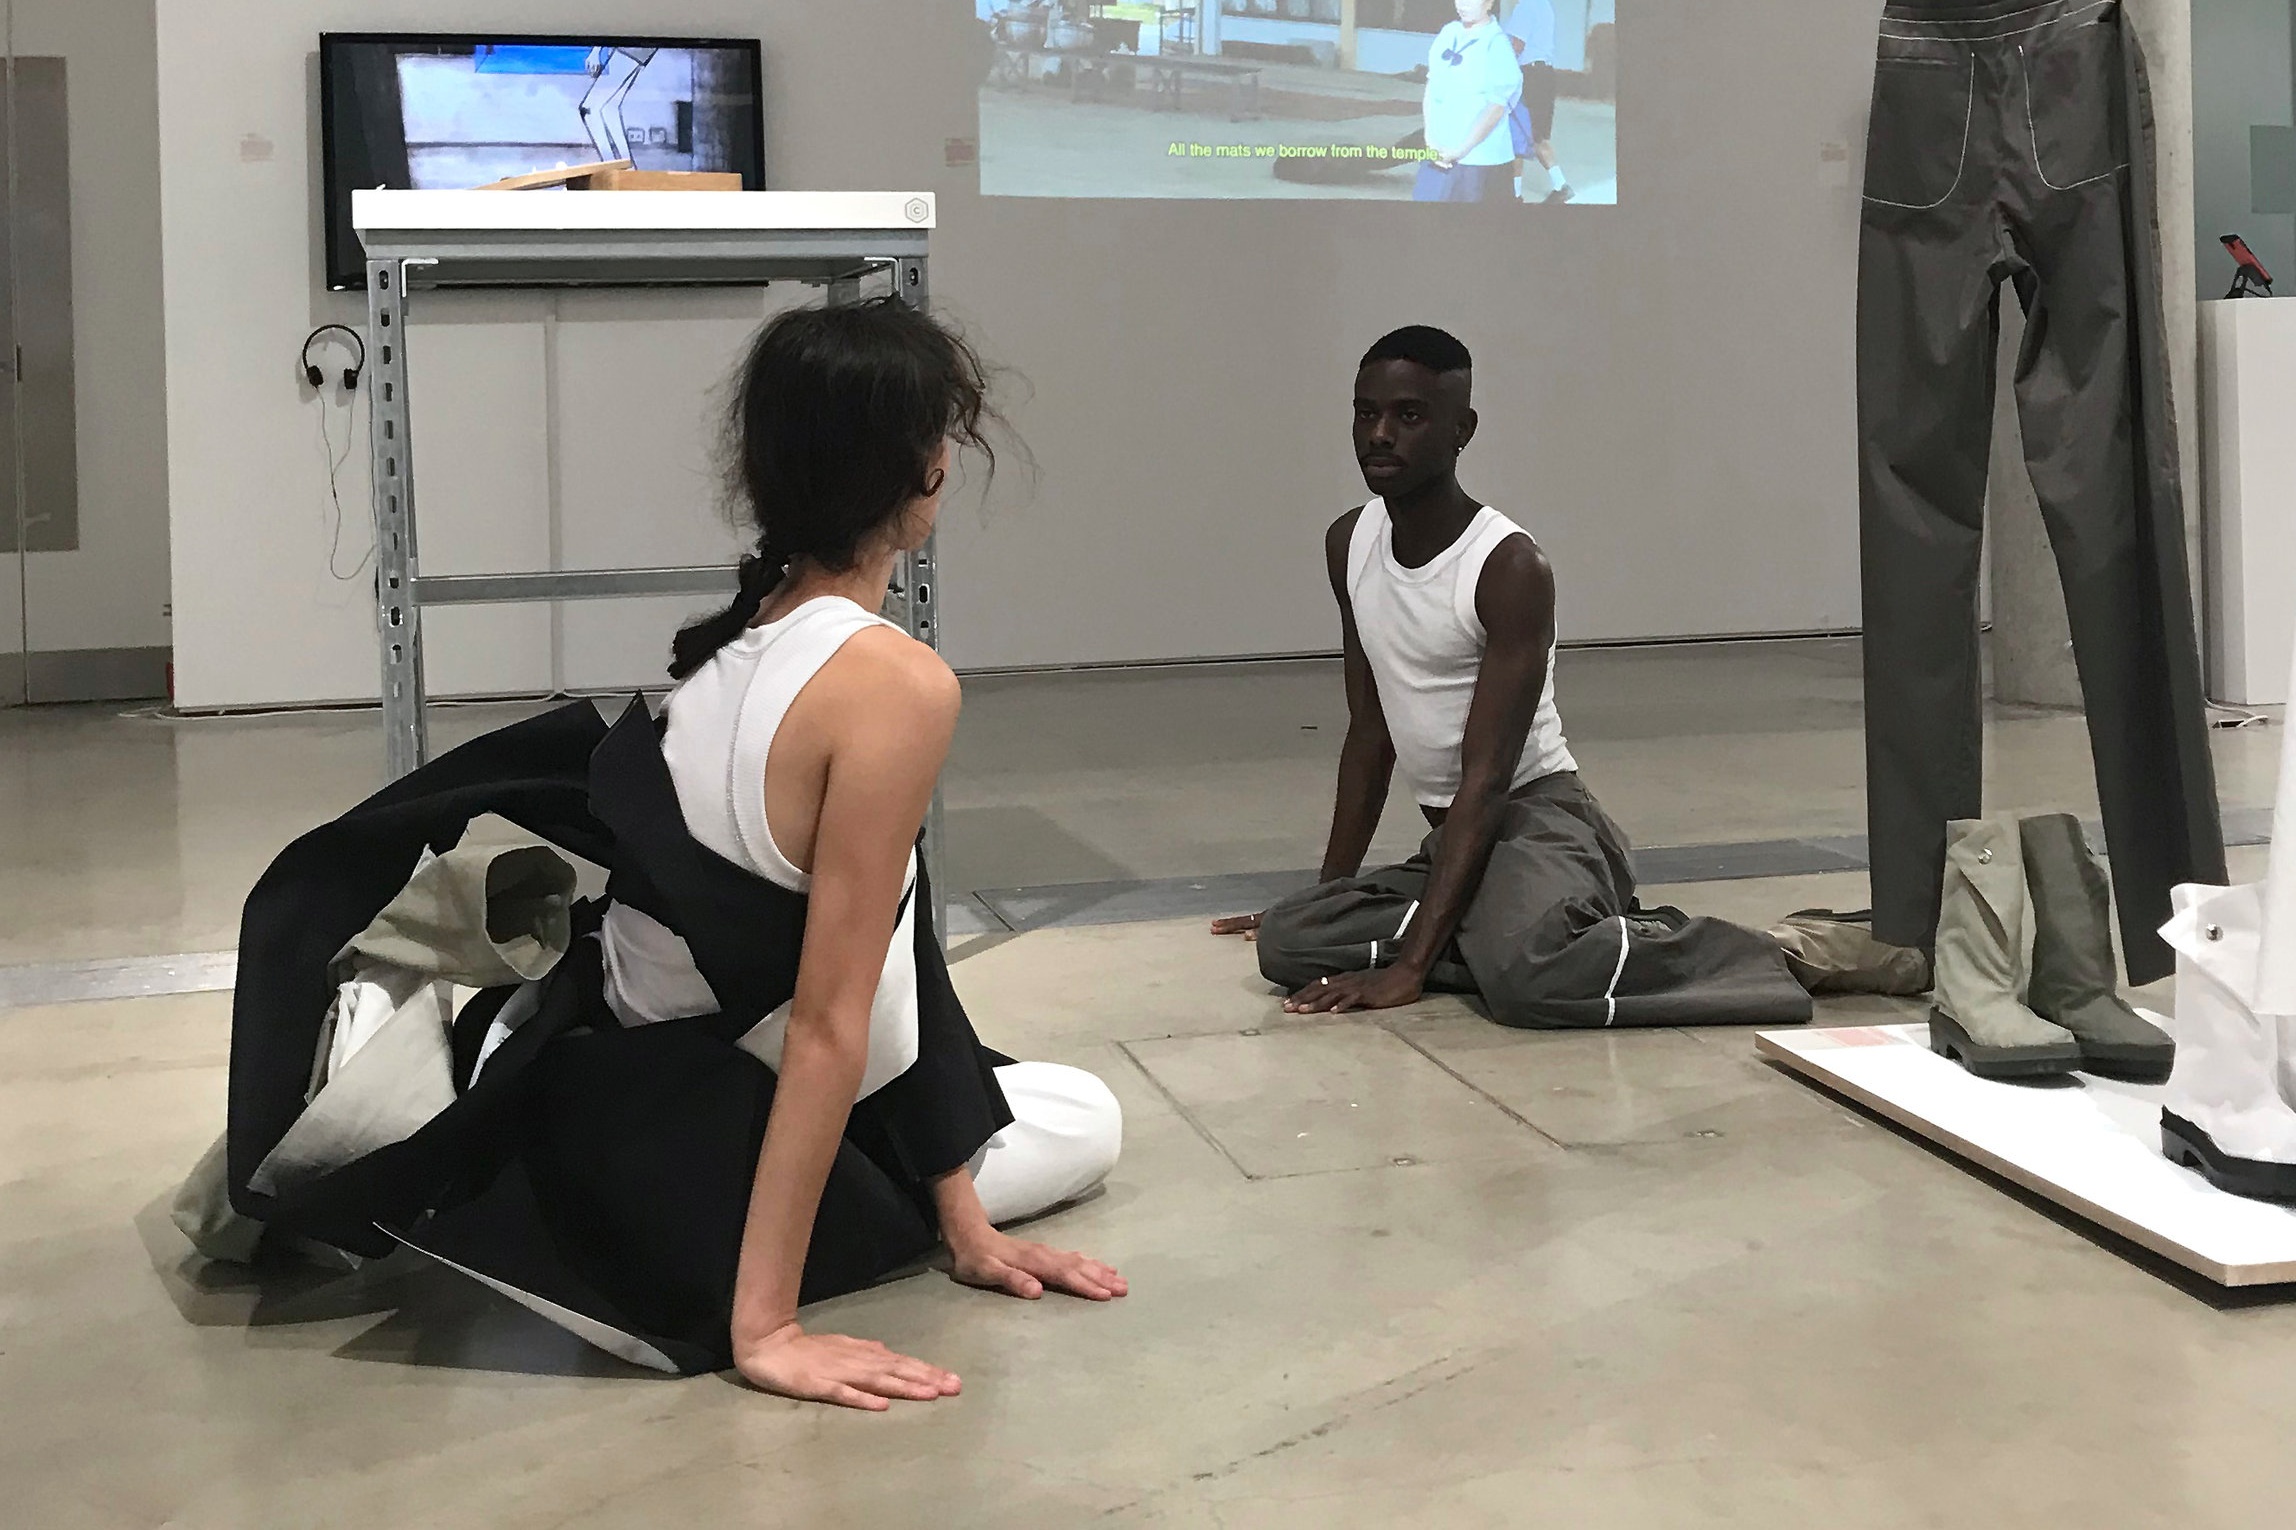 Performance 'Connection, Empathy, Play' at the Lethaby Gallery  2018